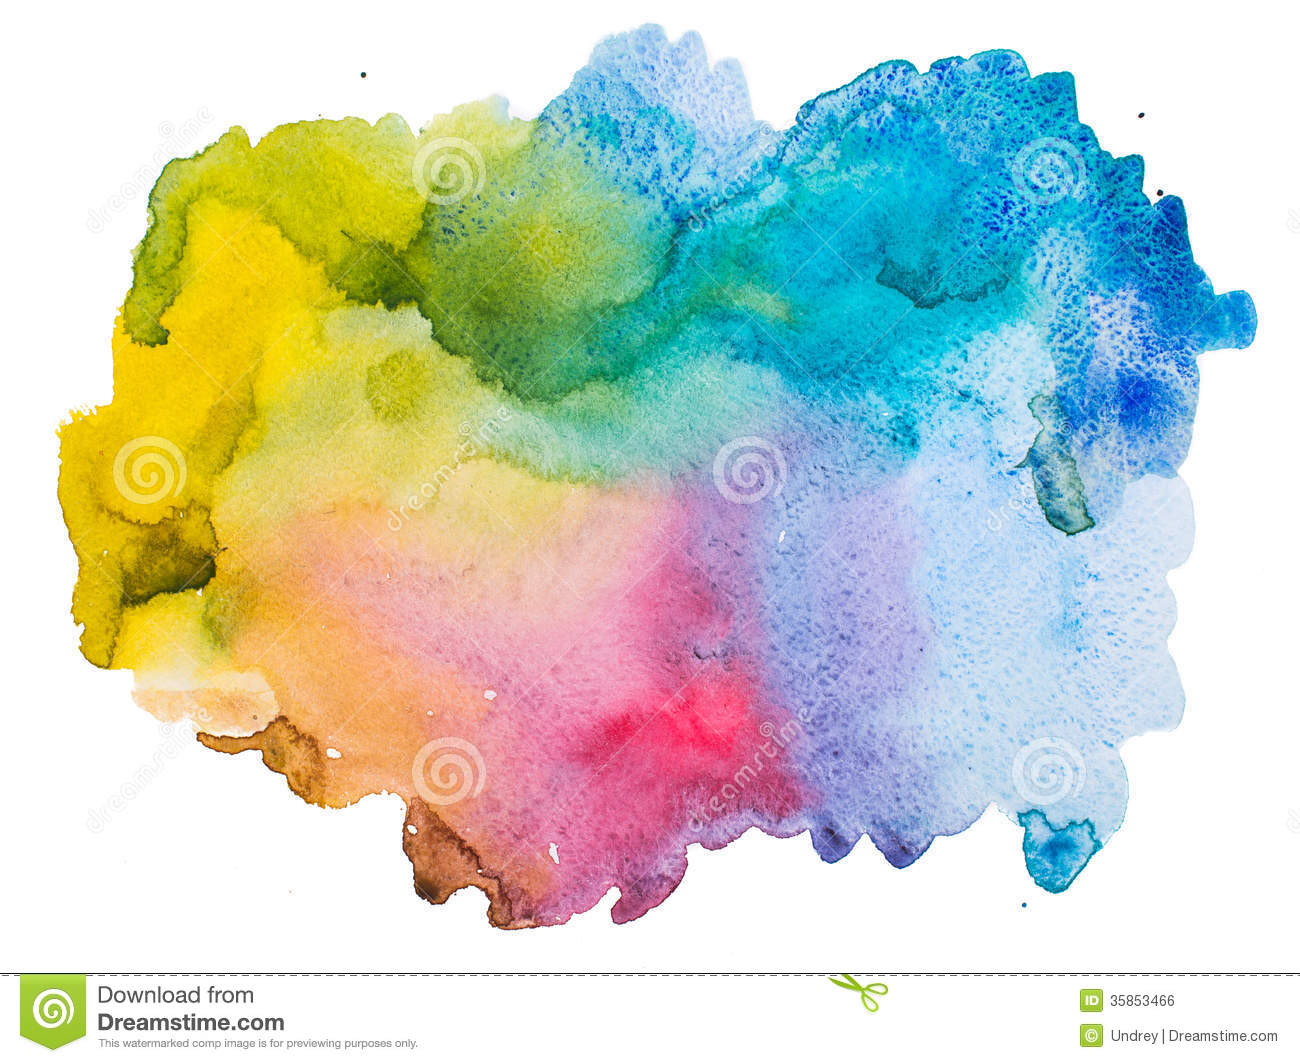 Watercolor splatter vector abstract watercolor background - Watercolour Abstract Background Royalty Free Stock Image